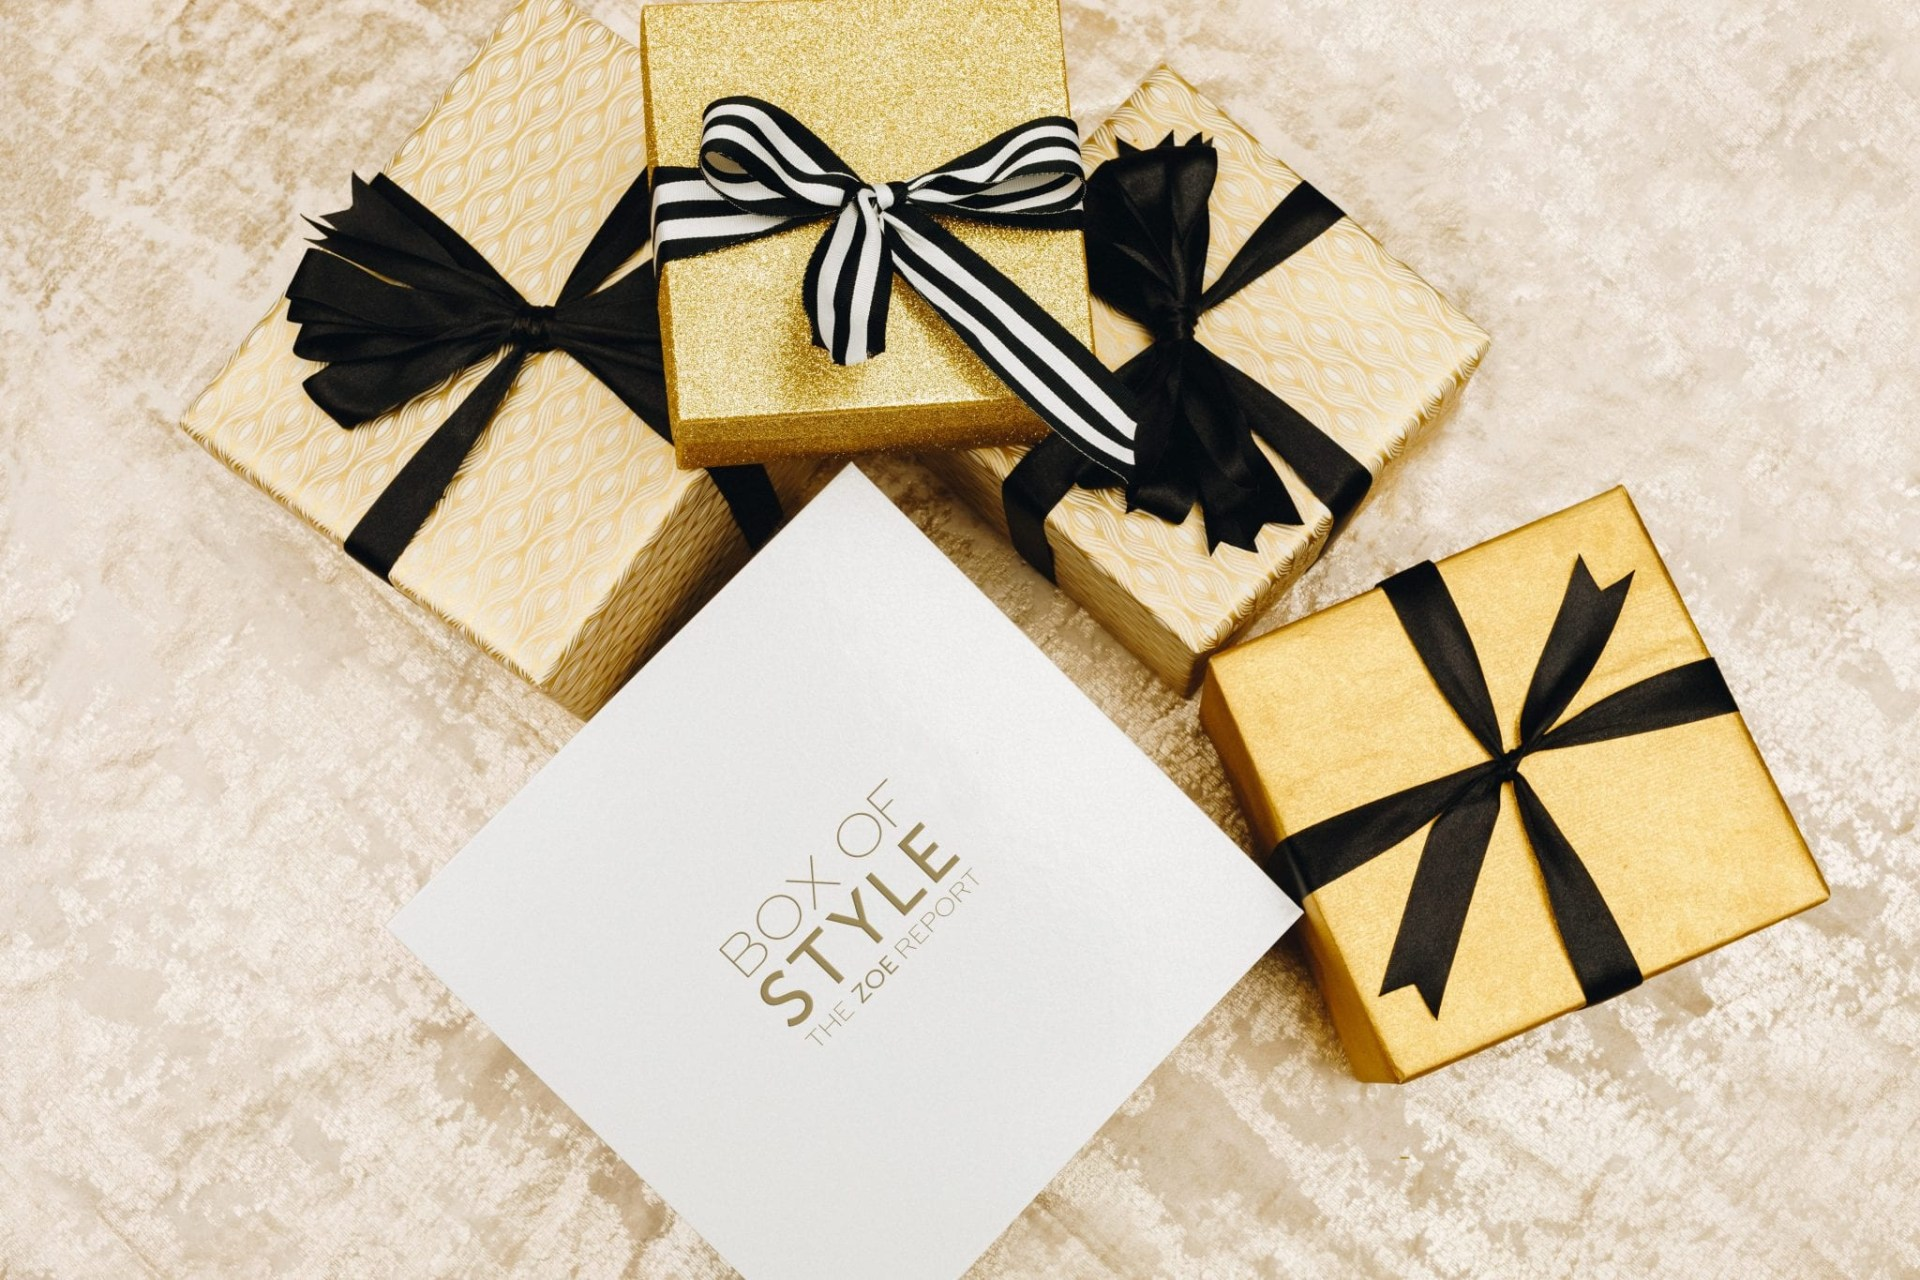 Box of Style is a seasonal subscription box curated by The Zoe Report, the online style destination from stylist, designer and editor Rachel Zoe.